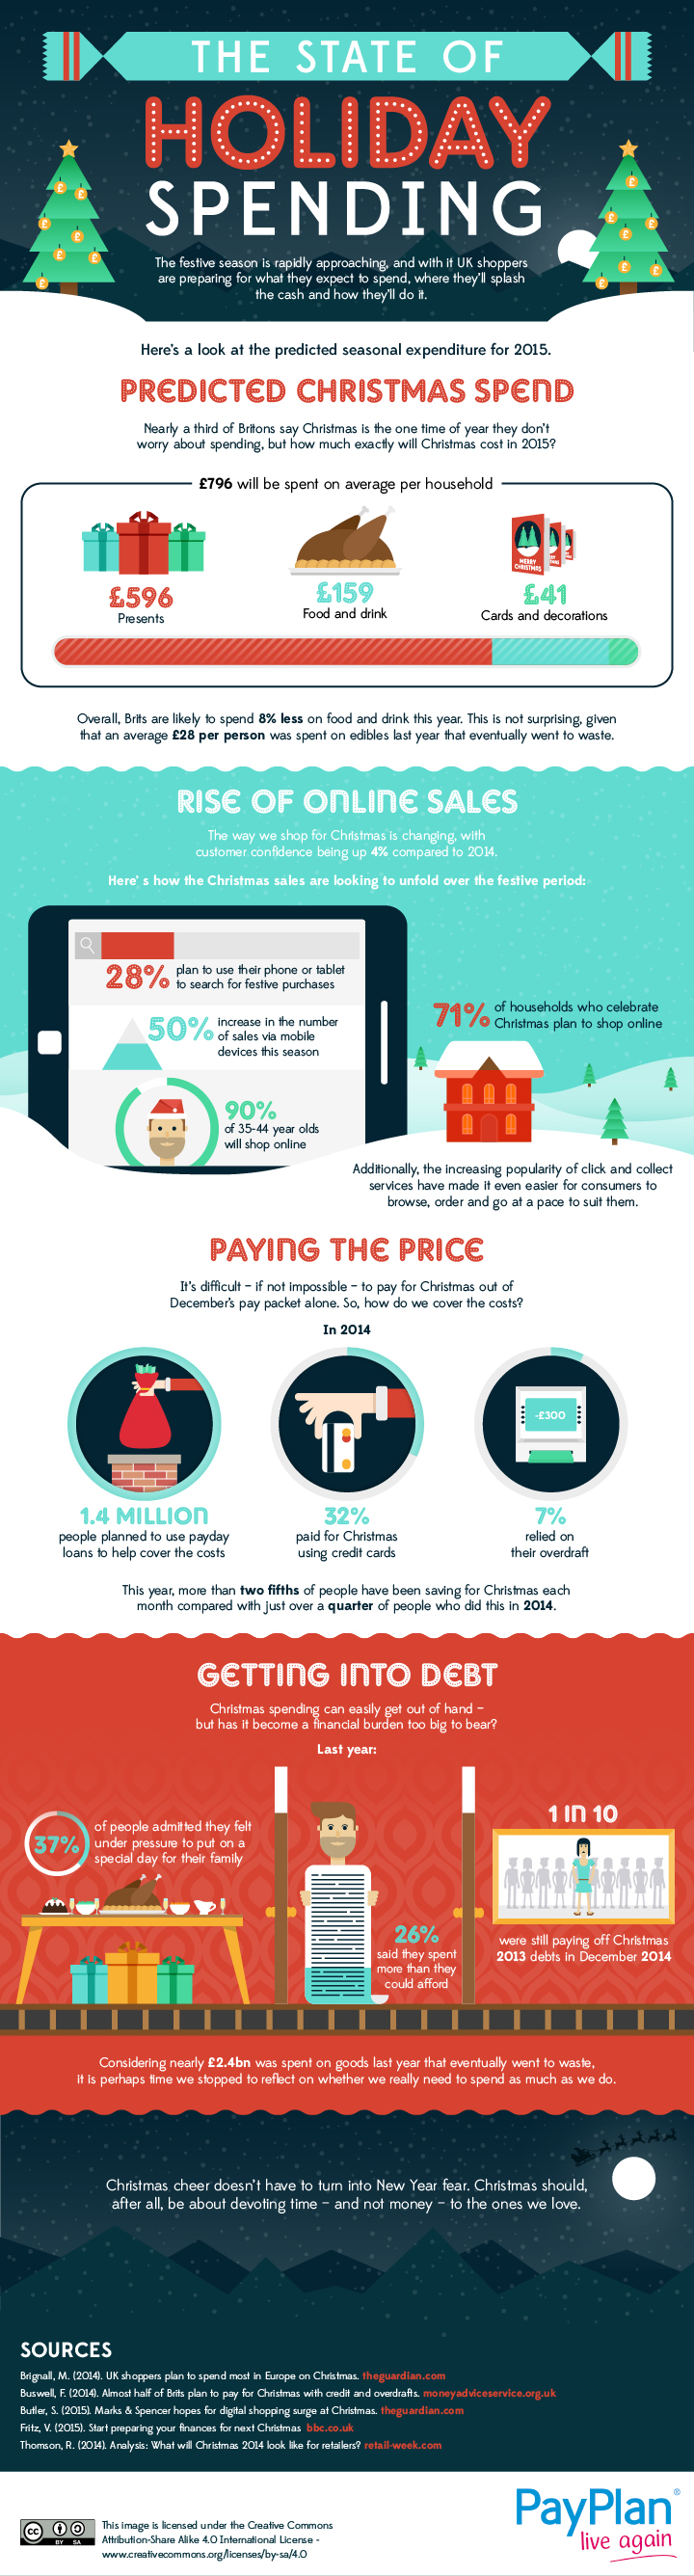 state of holiday spending infographic